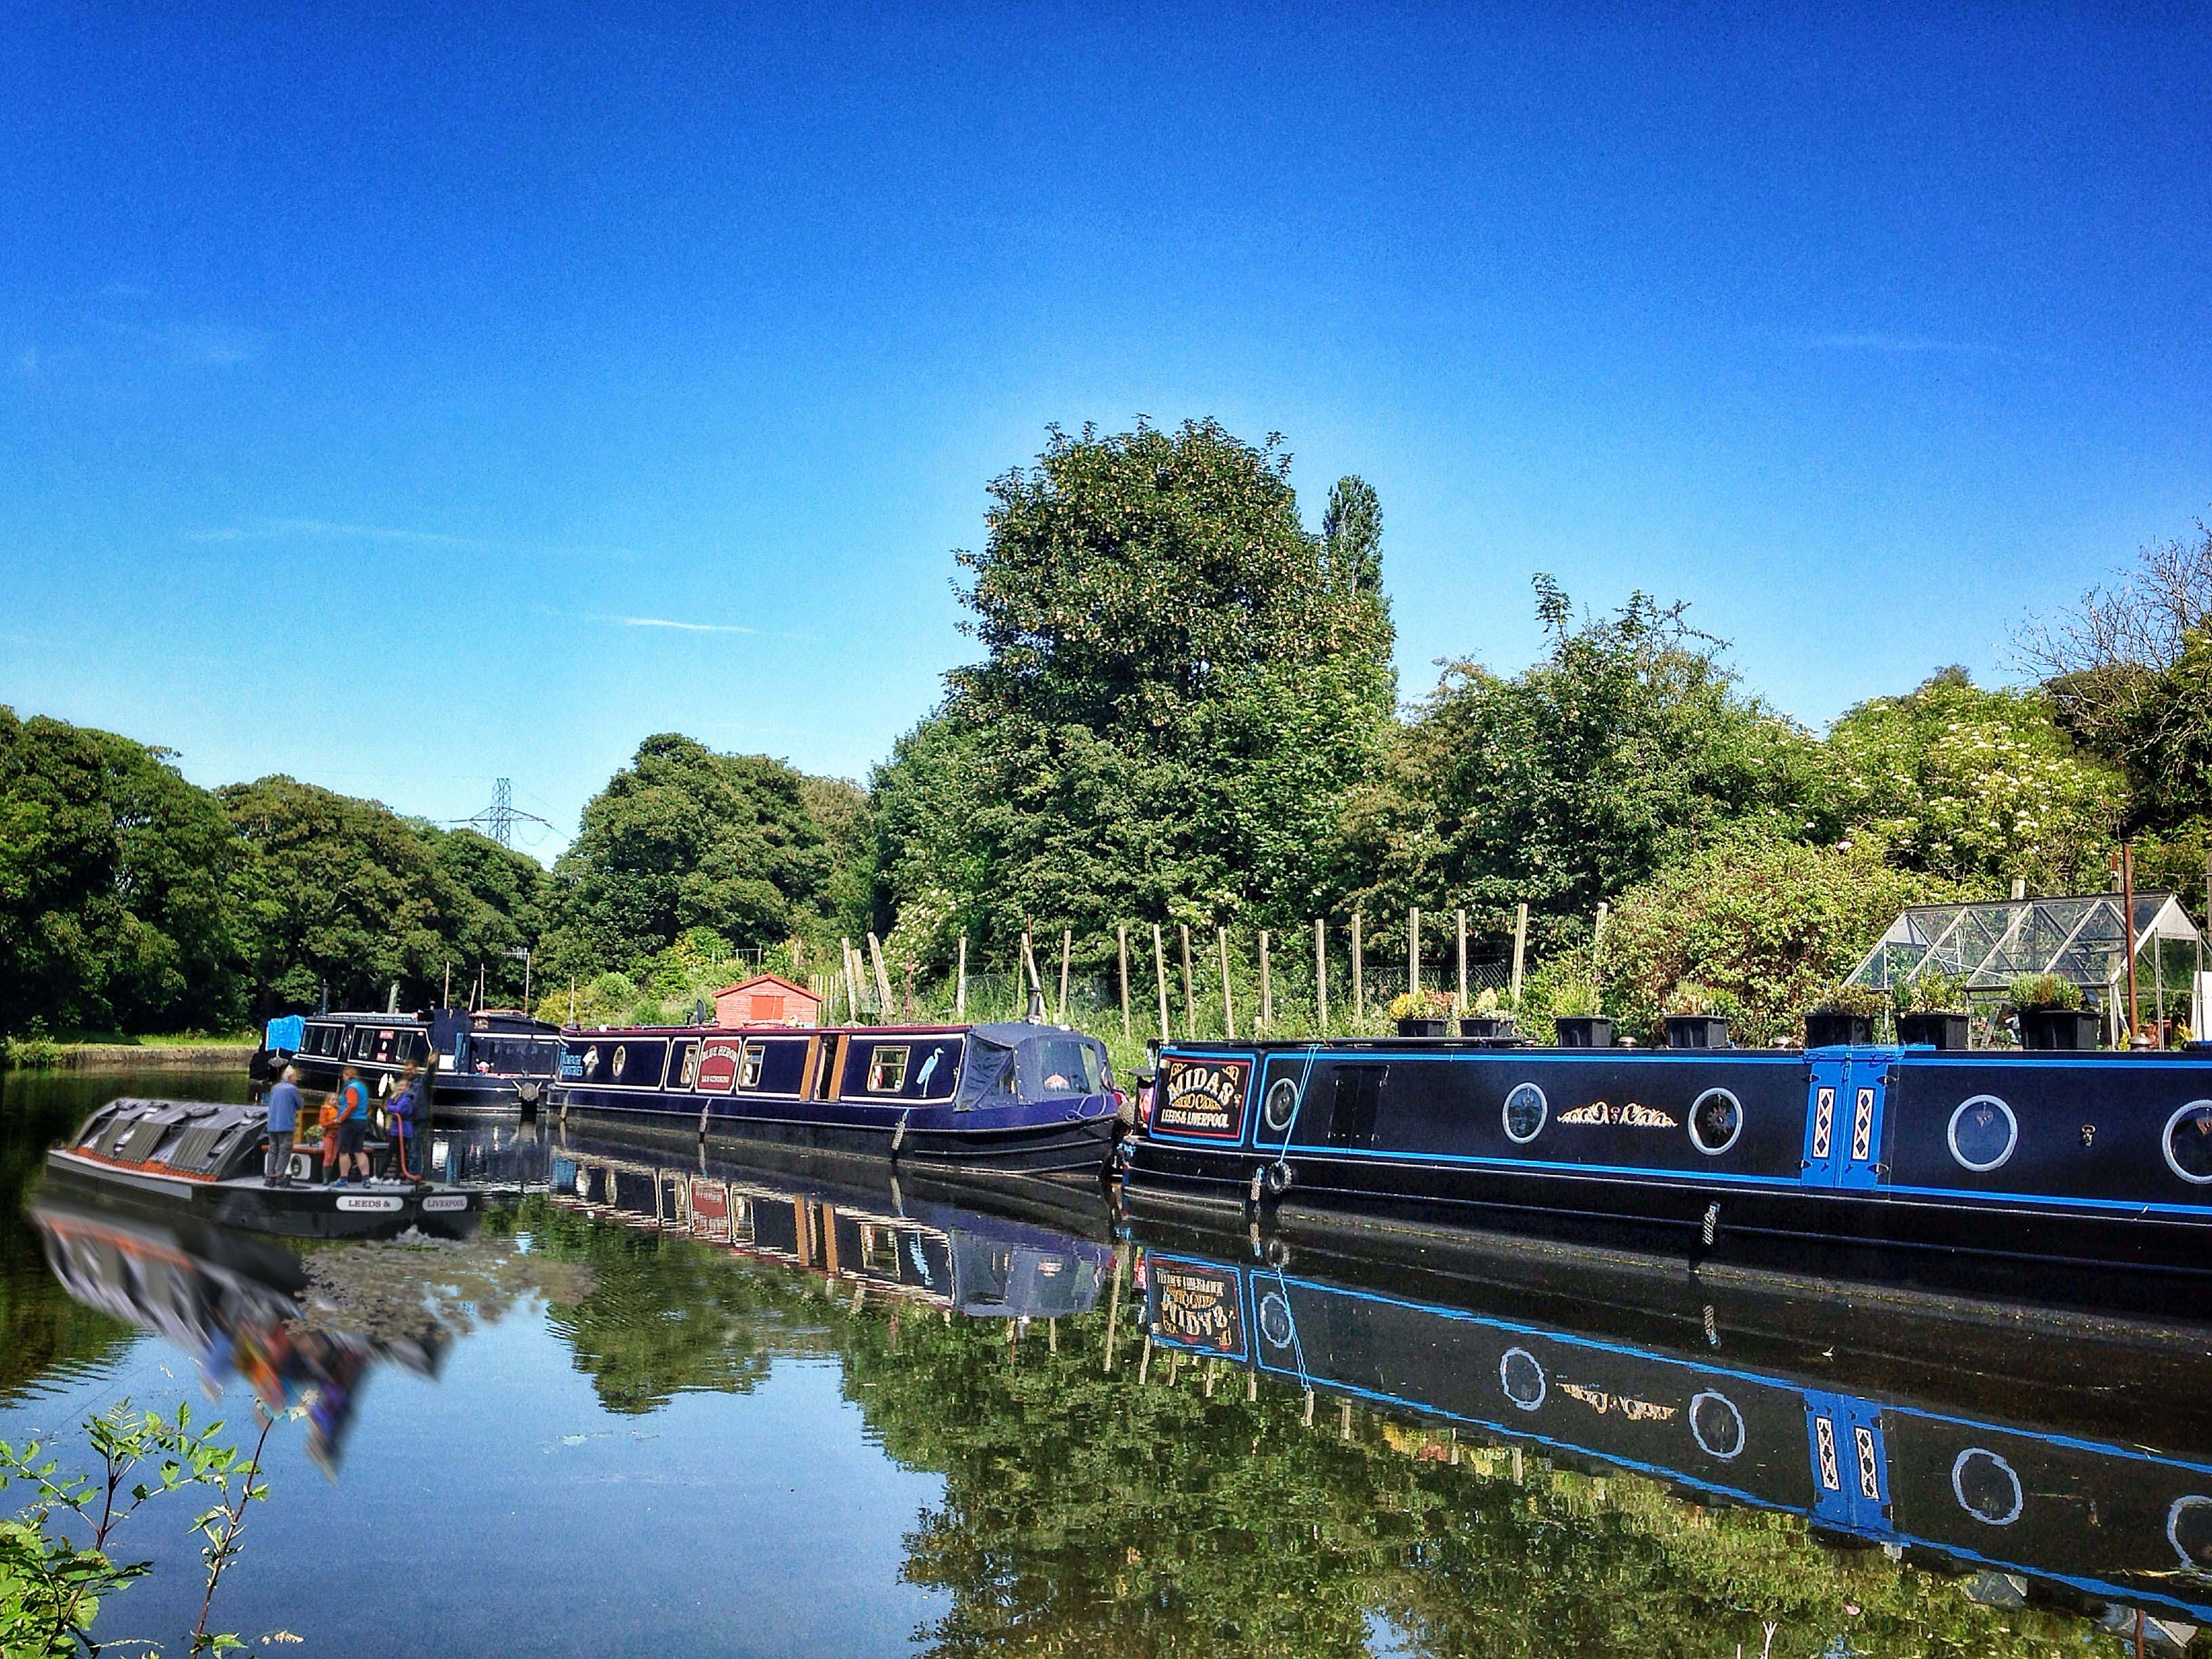 Long Distance Walks in Leeds and Liverpool Canal, Yorkshire in England